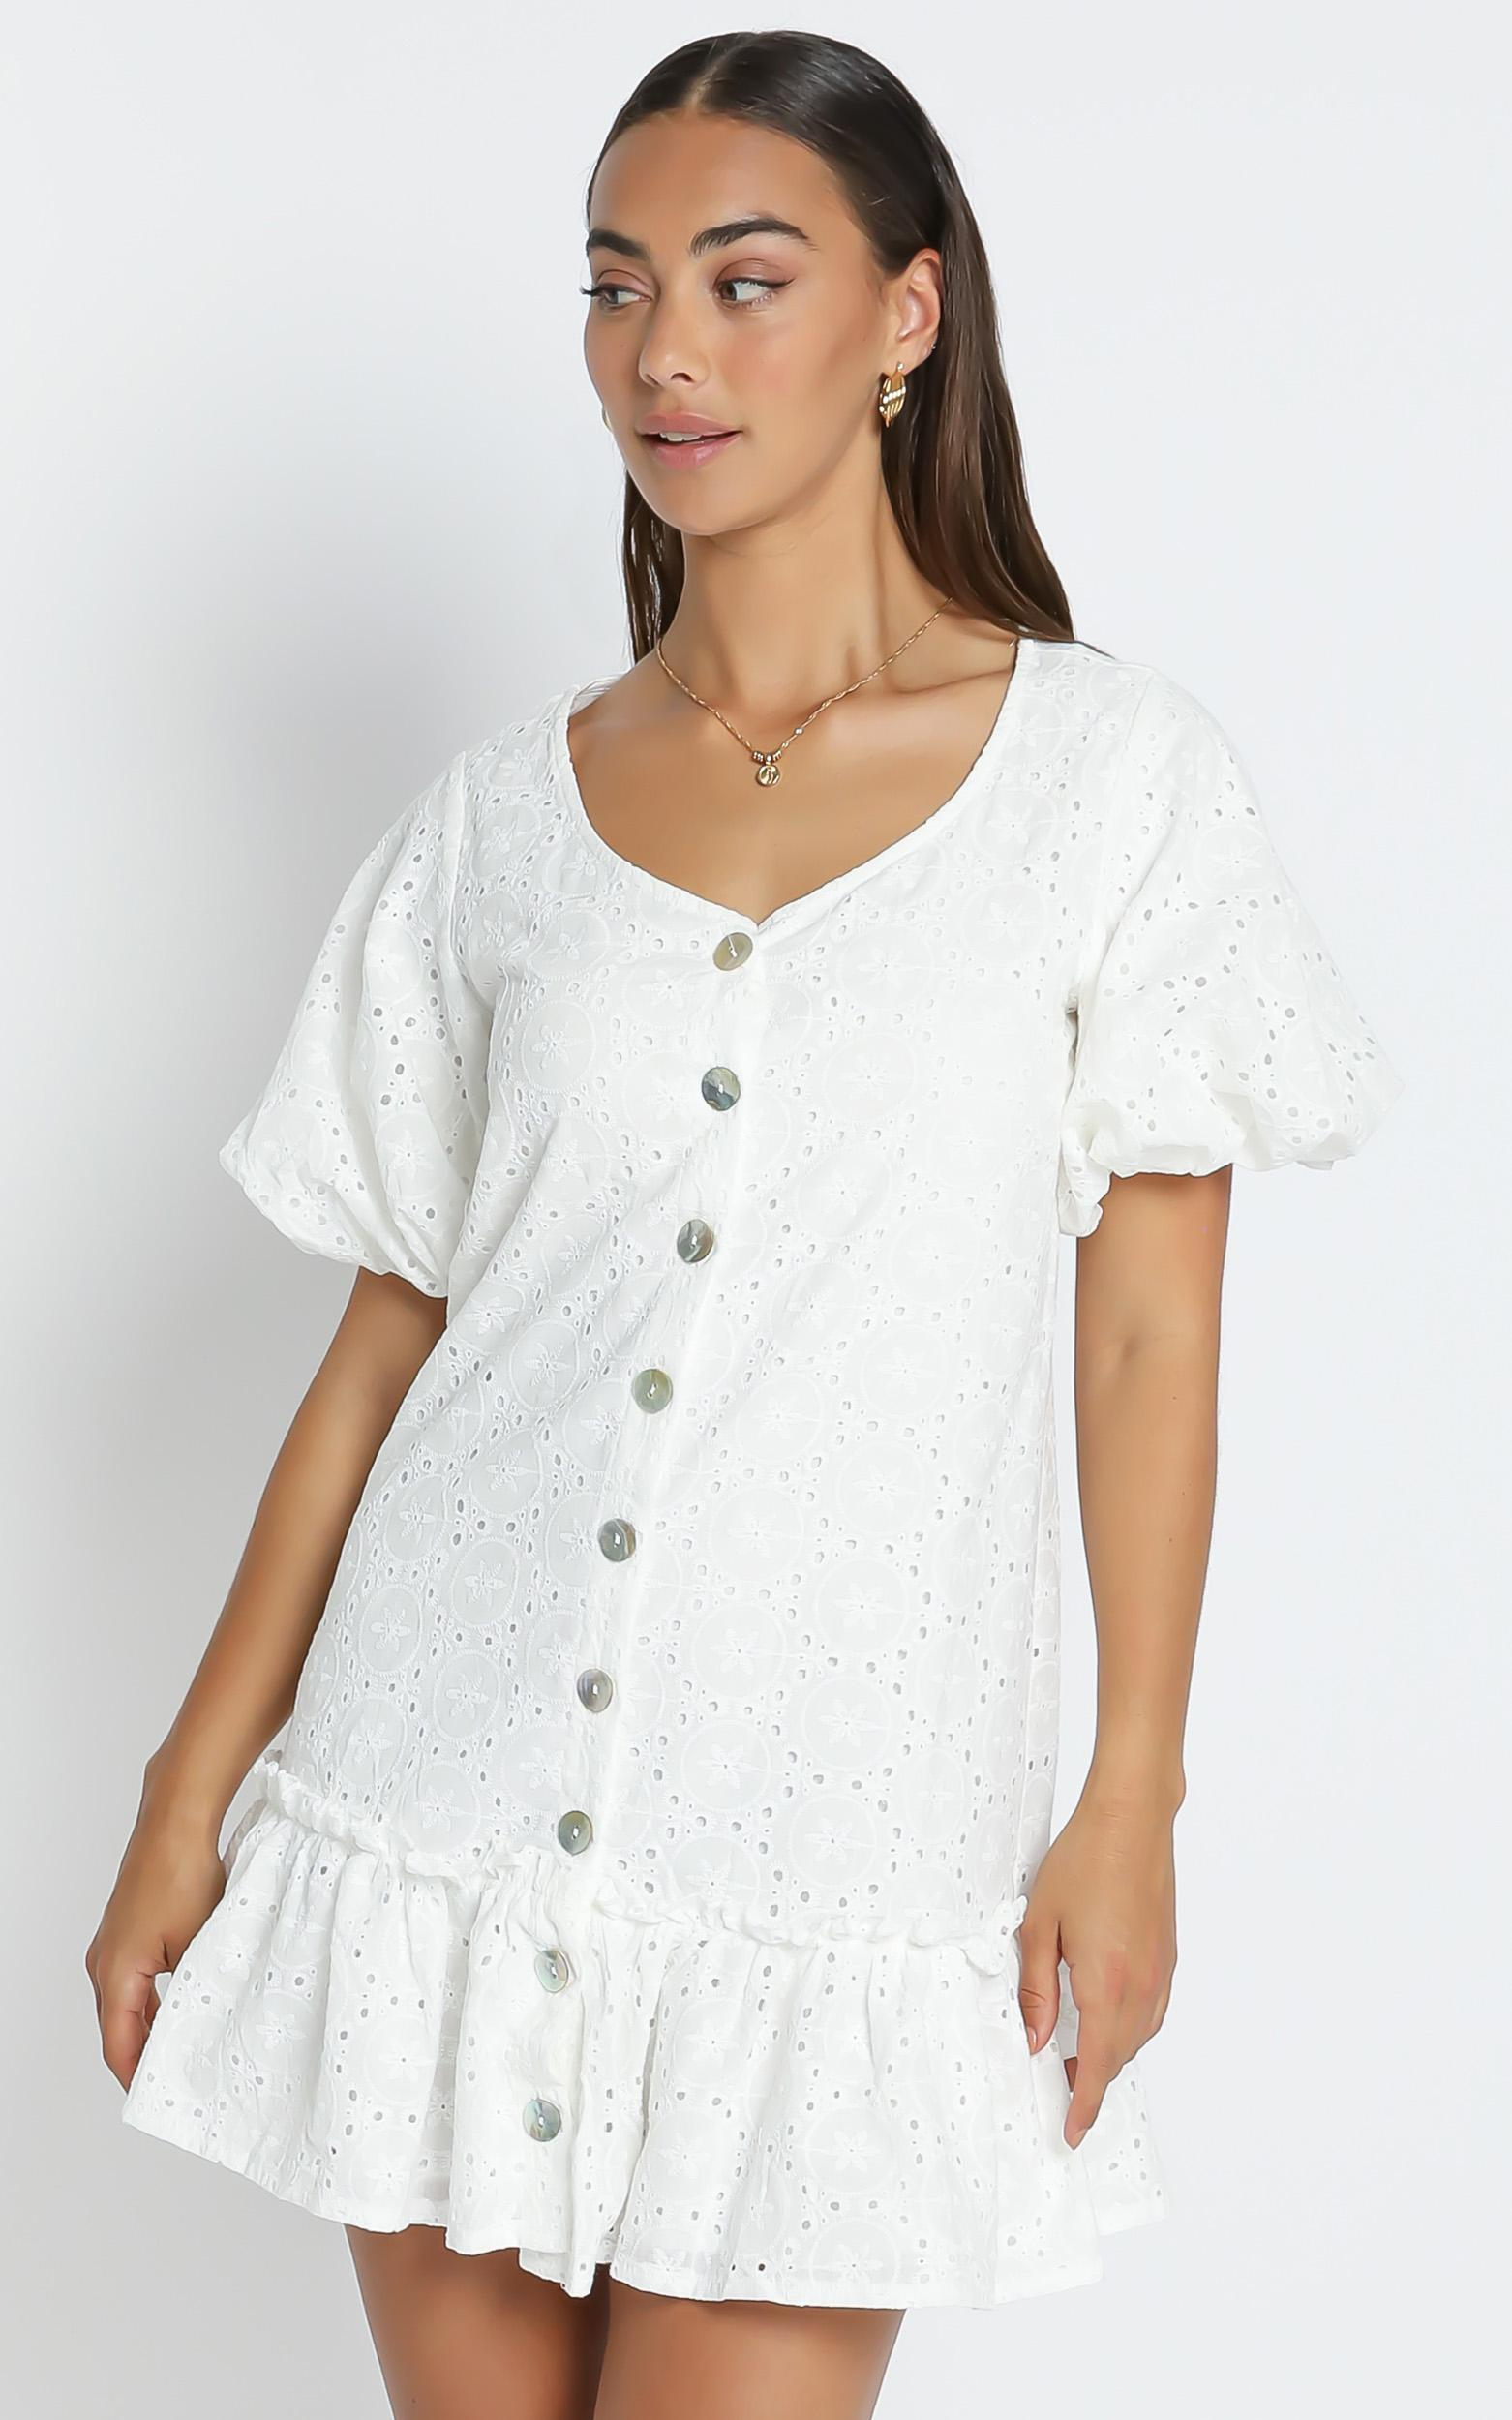 Montana Dress in White - 6 (XS), White, hi-res image number null